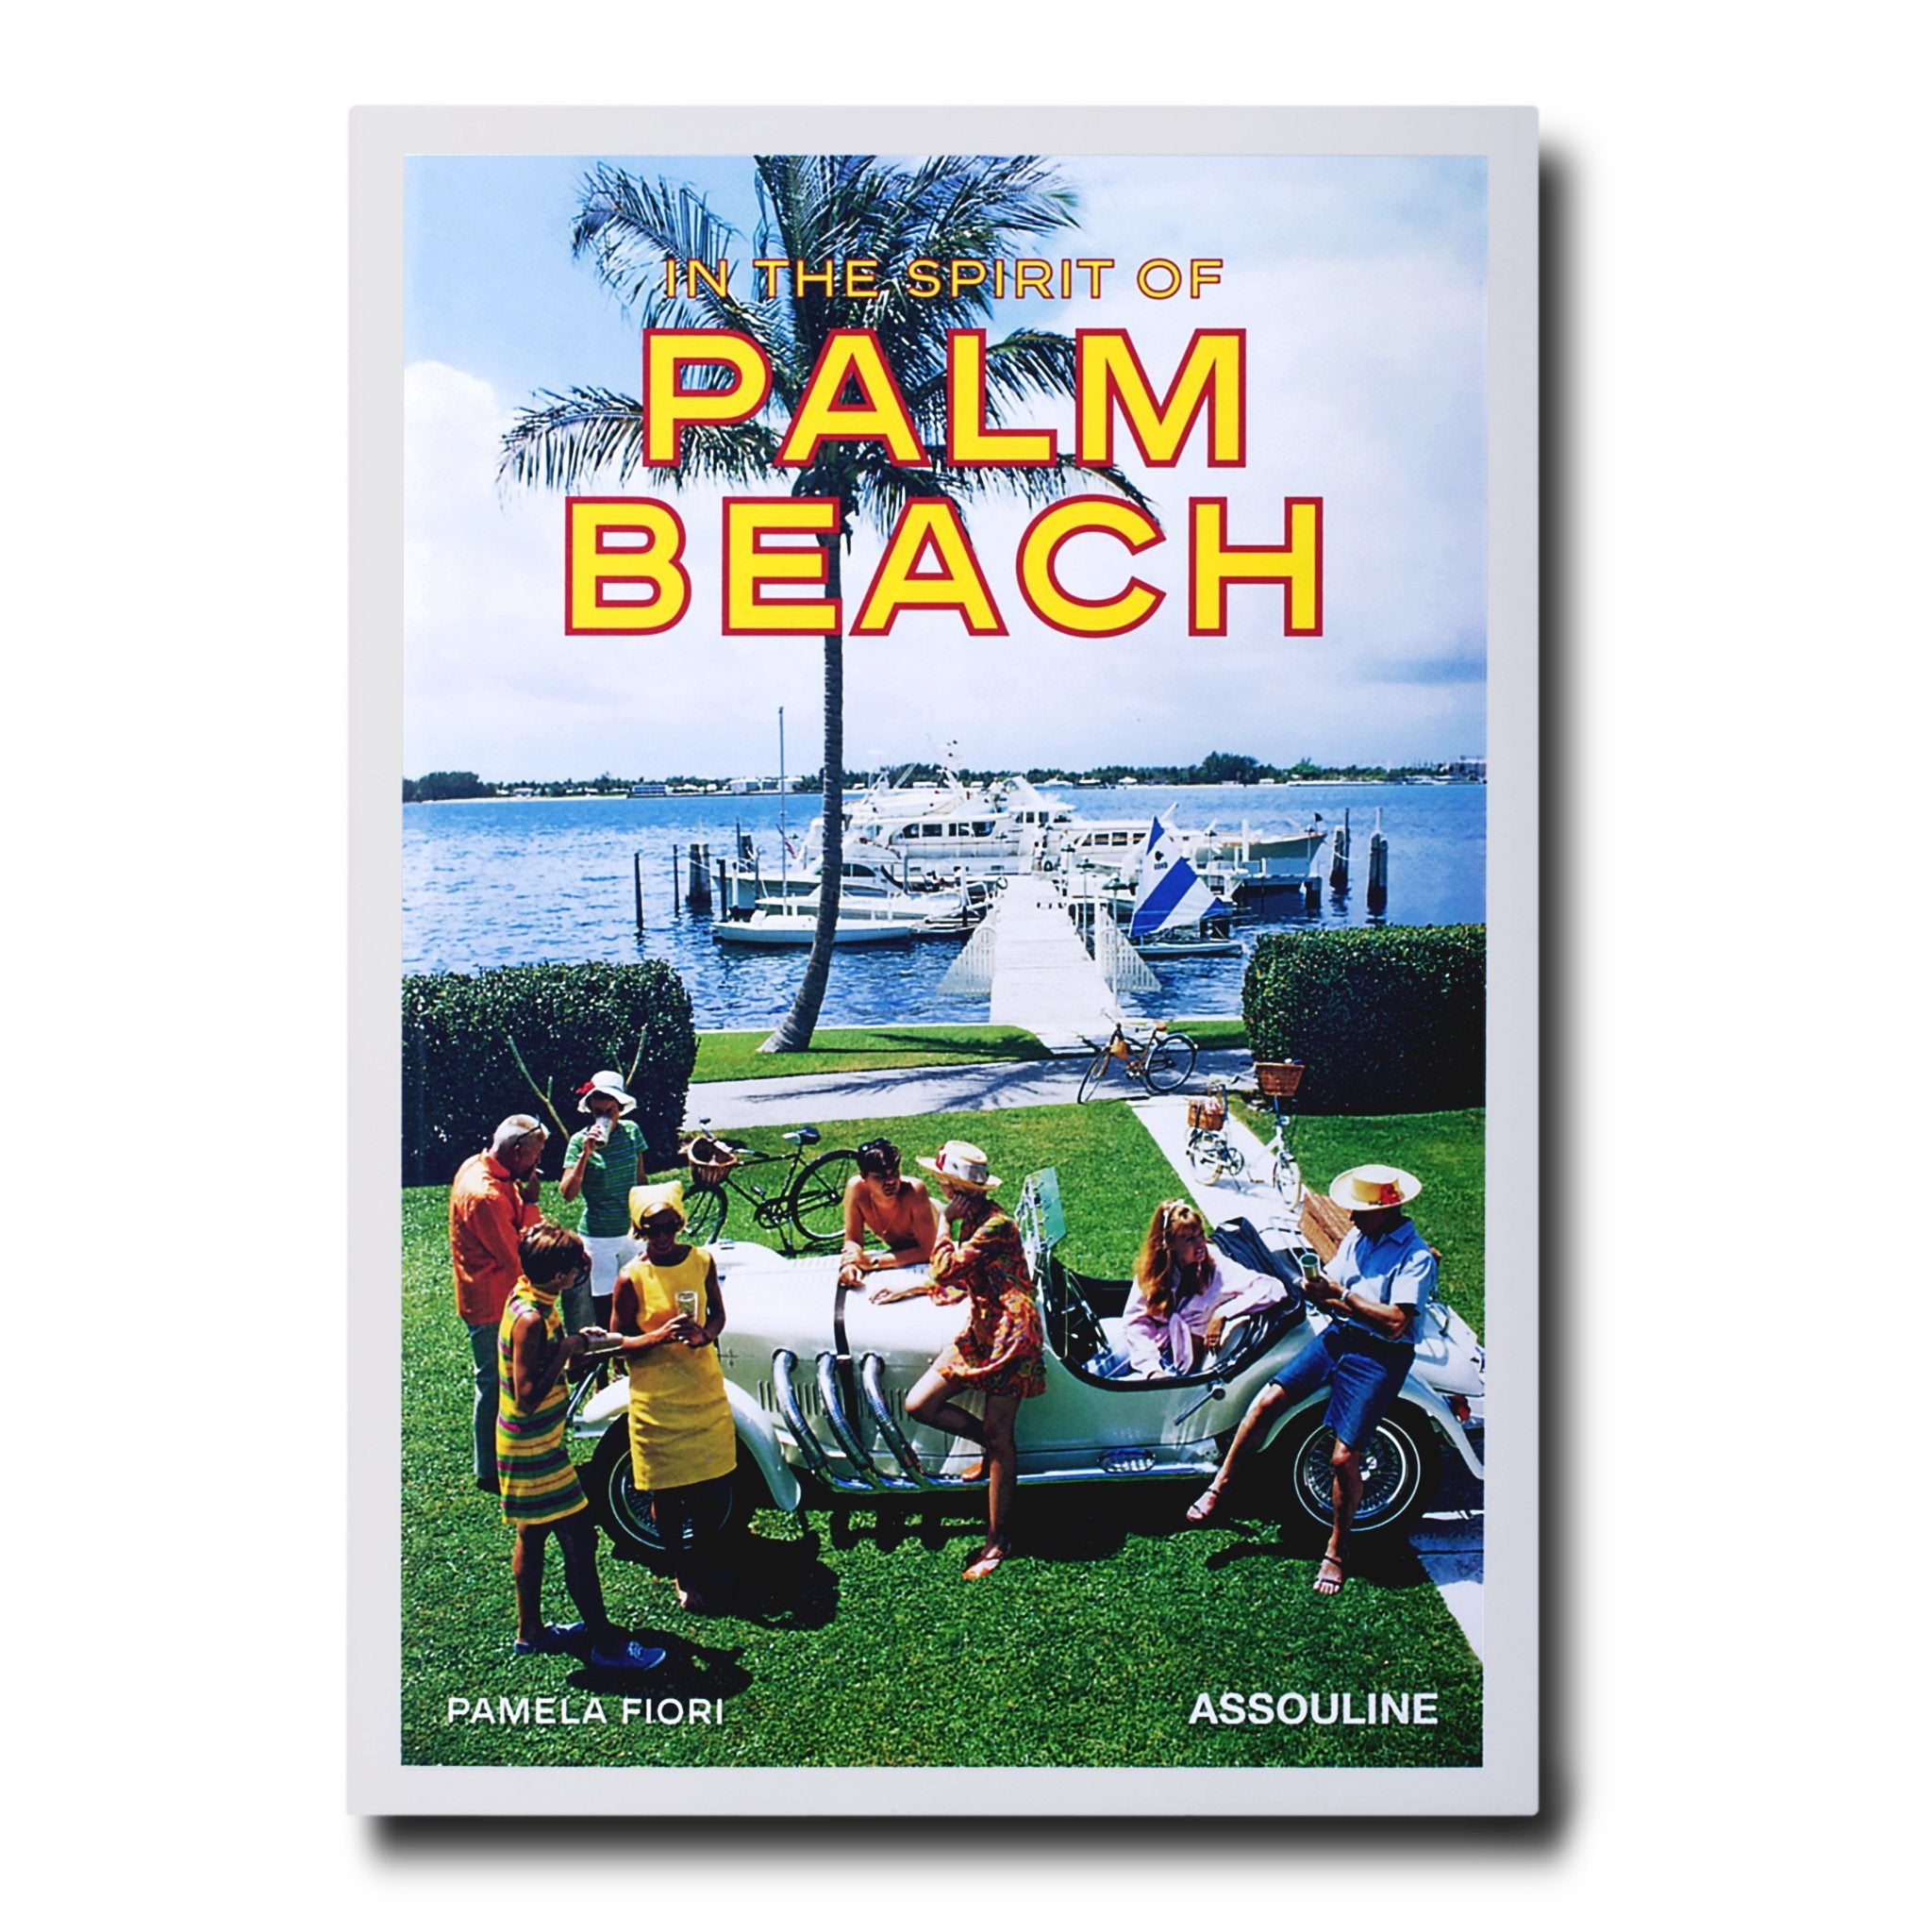 ASSOULINE I IN THE SPIRIT OF PALM BEACH